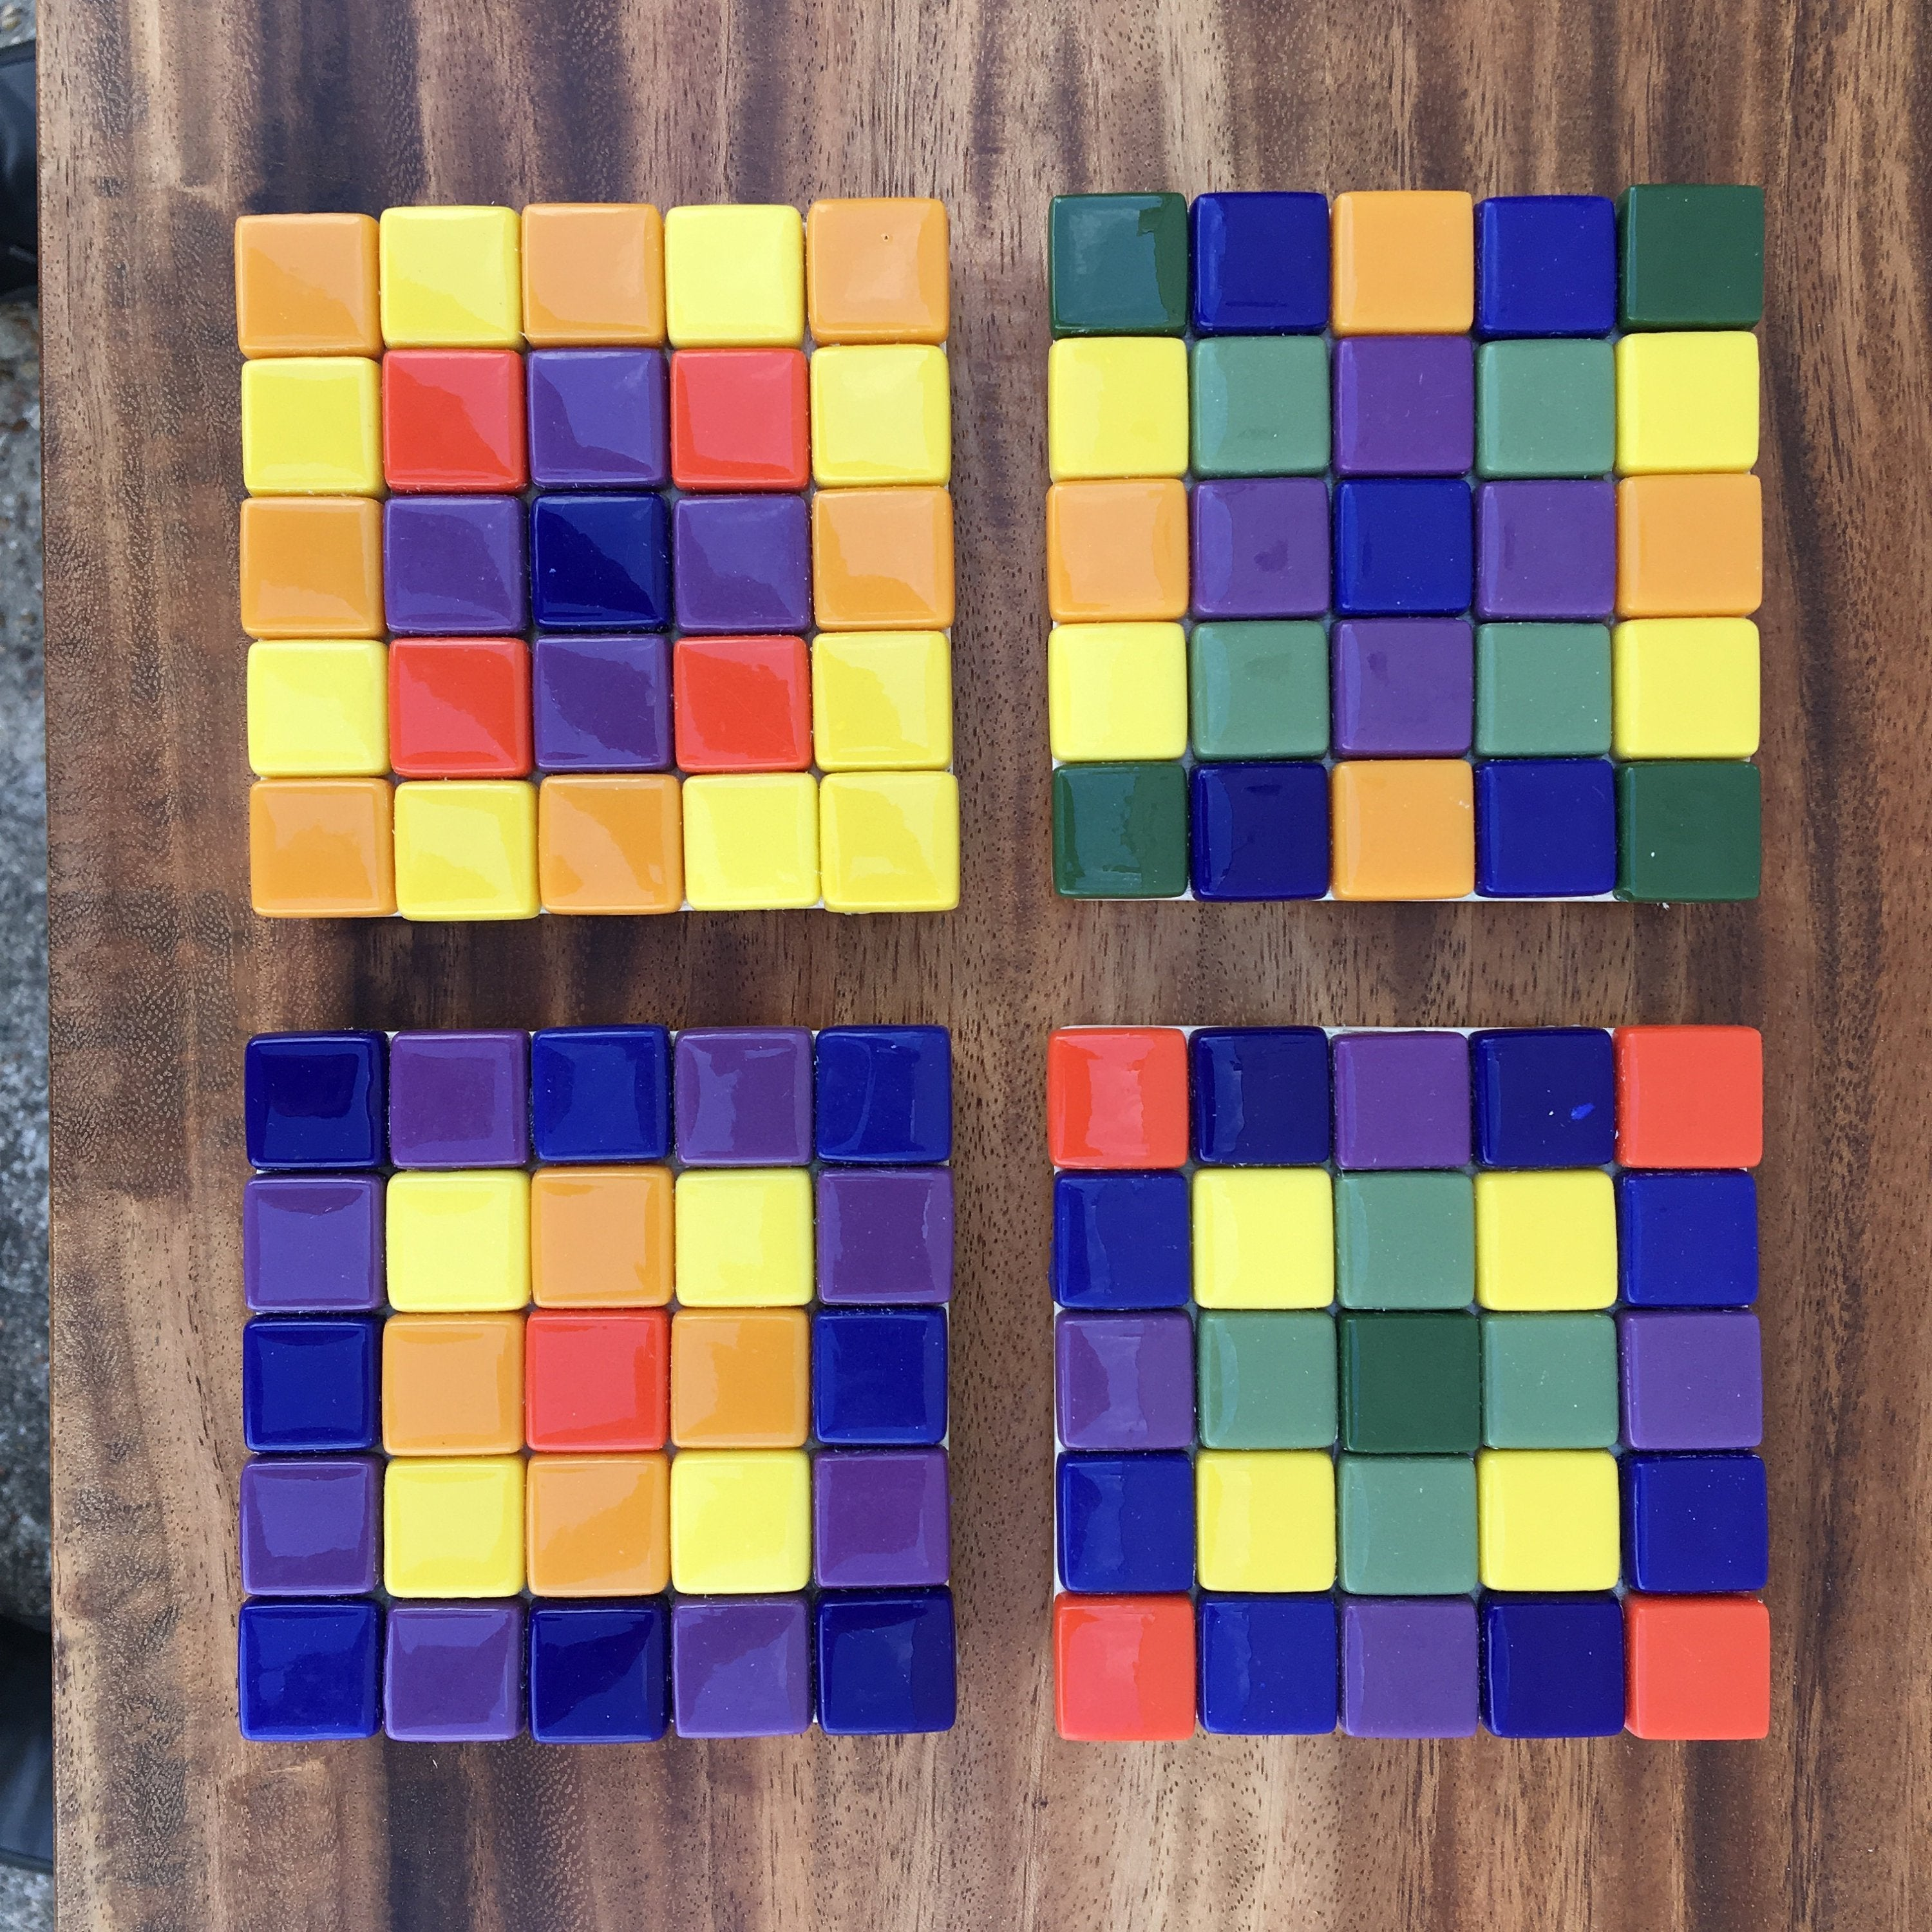 ARKA Living Colorful glass Coaster set(4) by lula Azorey, handmade colorful mosaic glass coaster 4